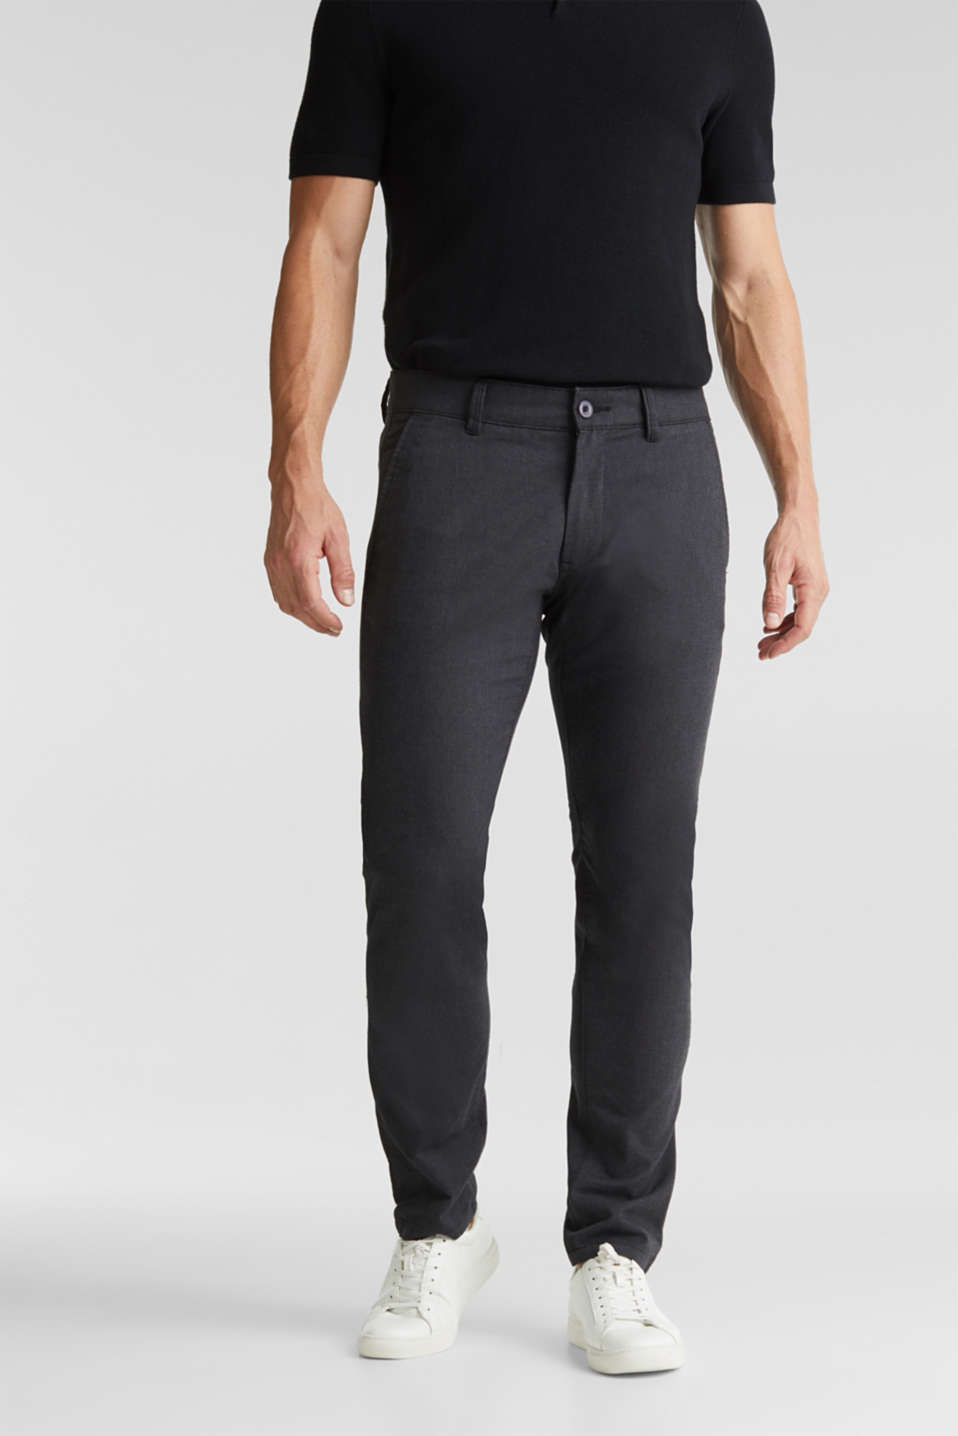 Esprit - Brushed pants med struktur